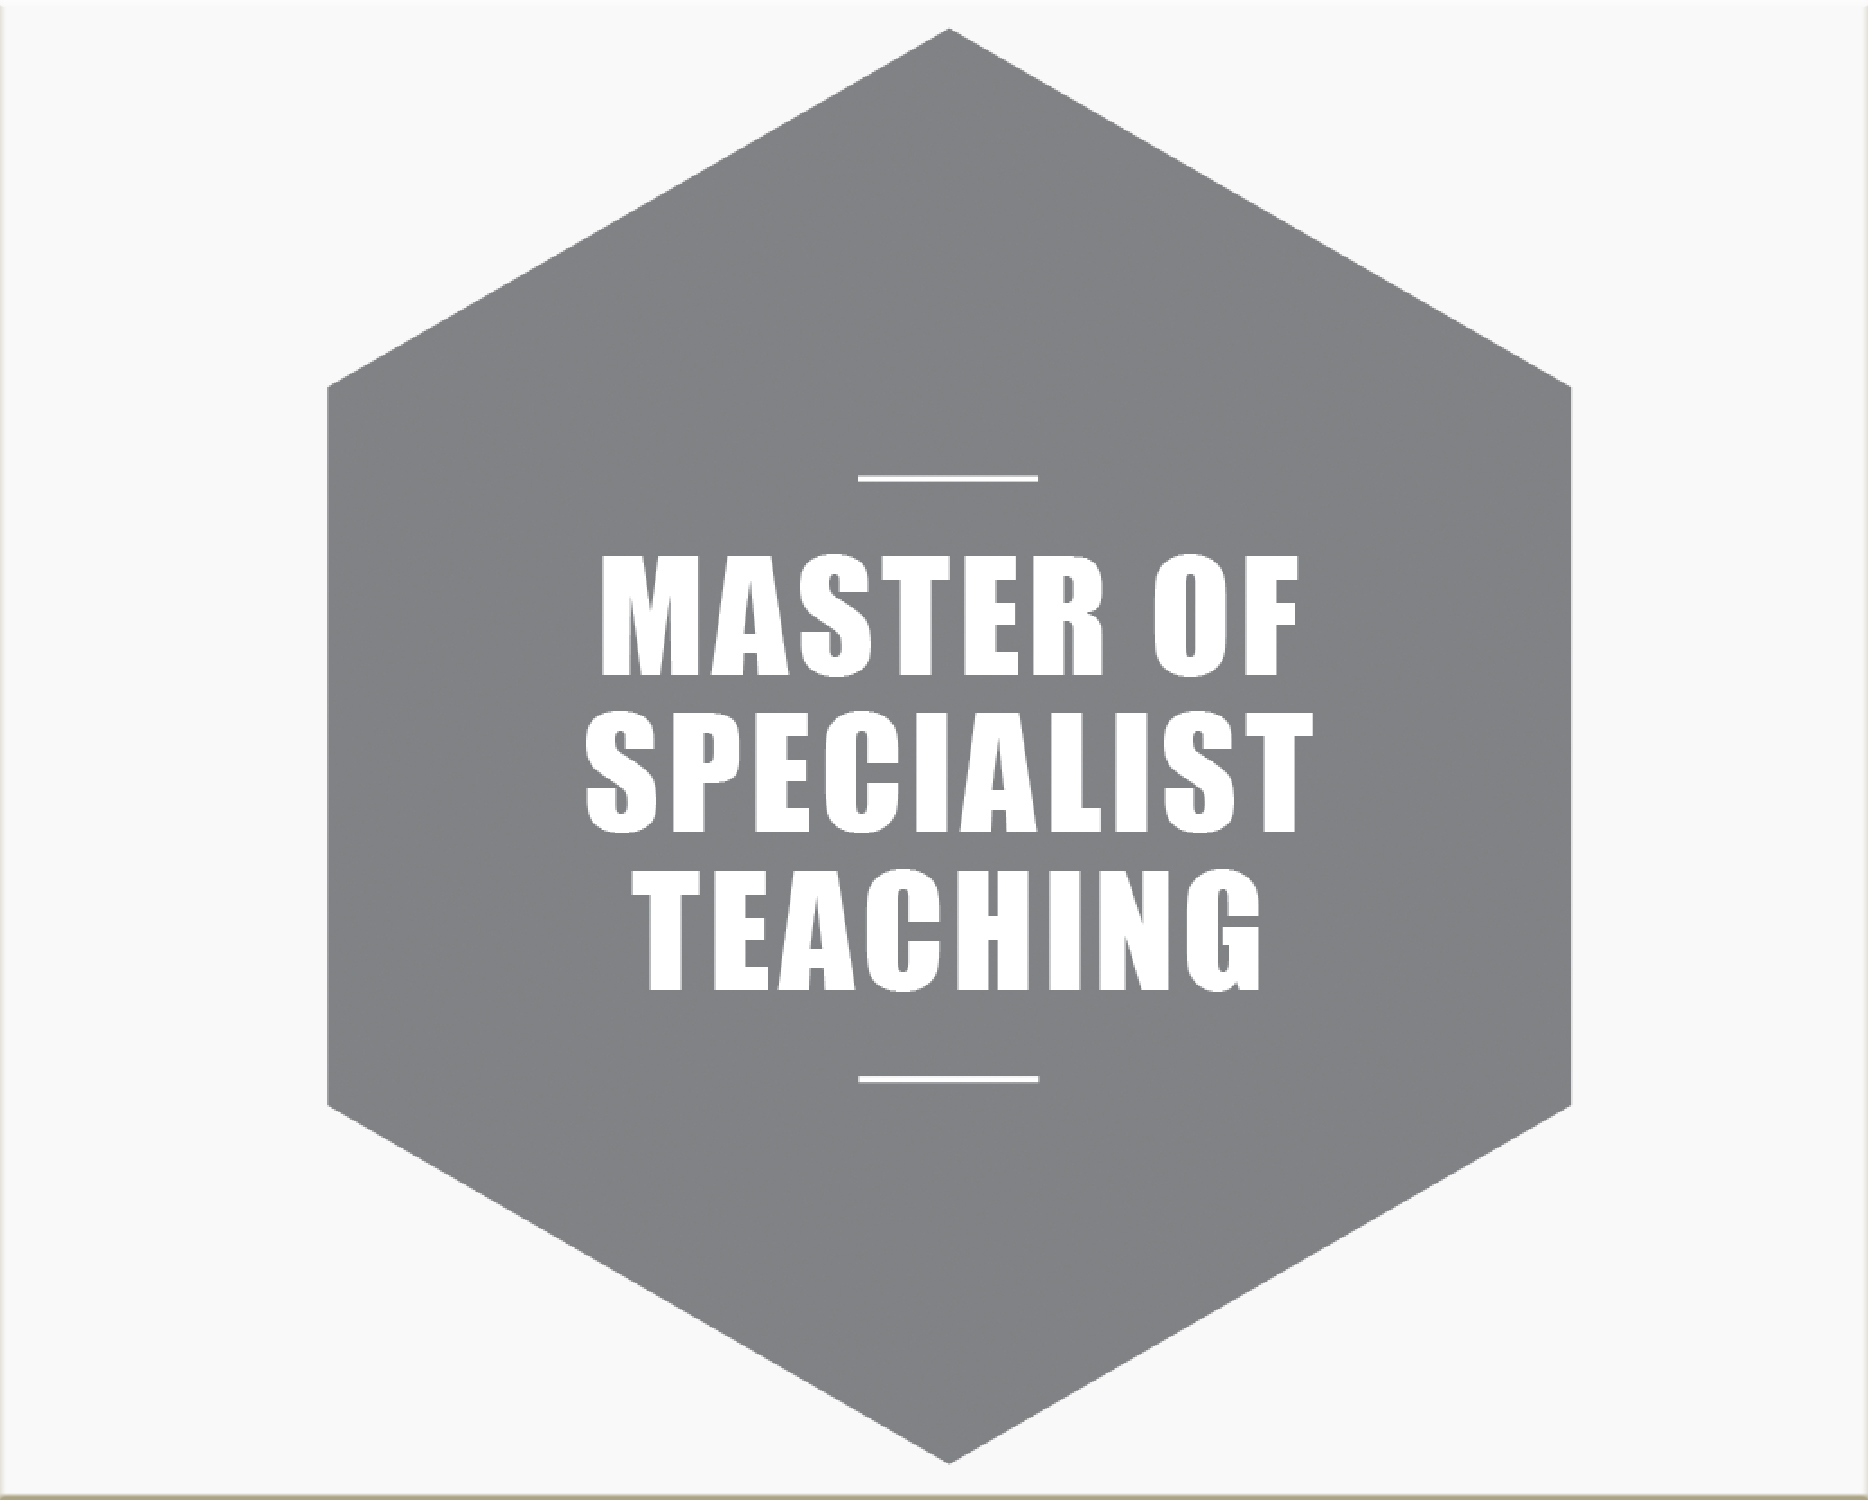 Master of specialist teaching